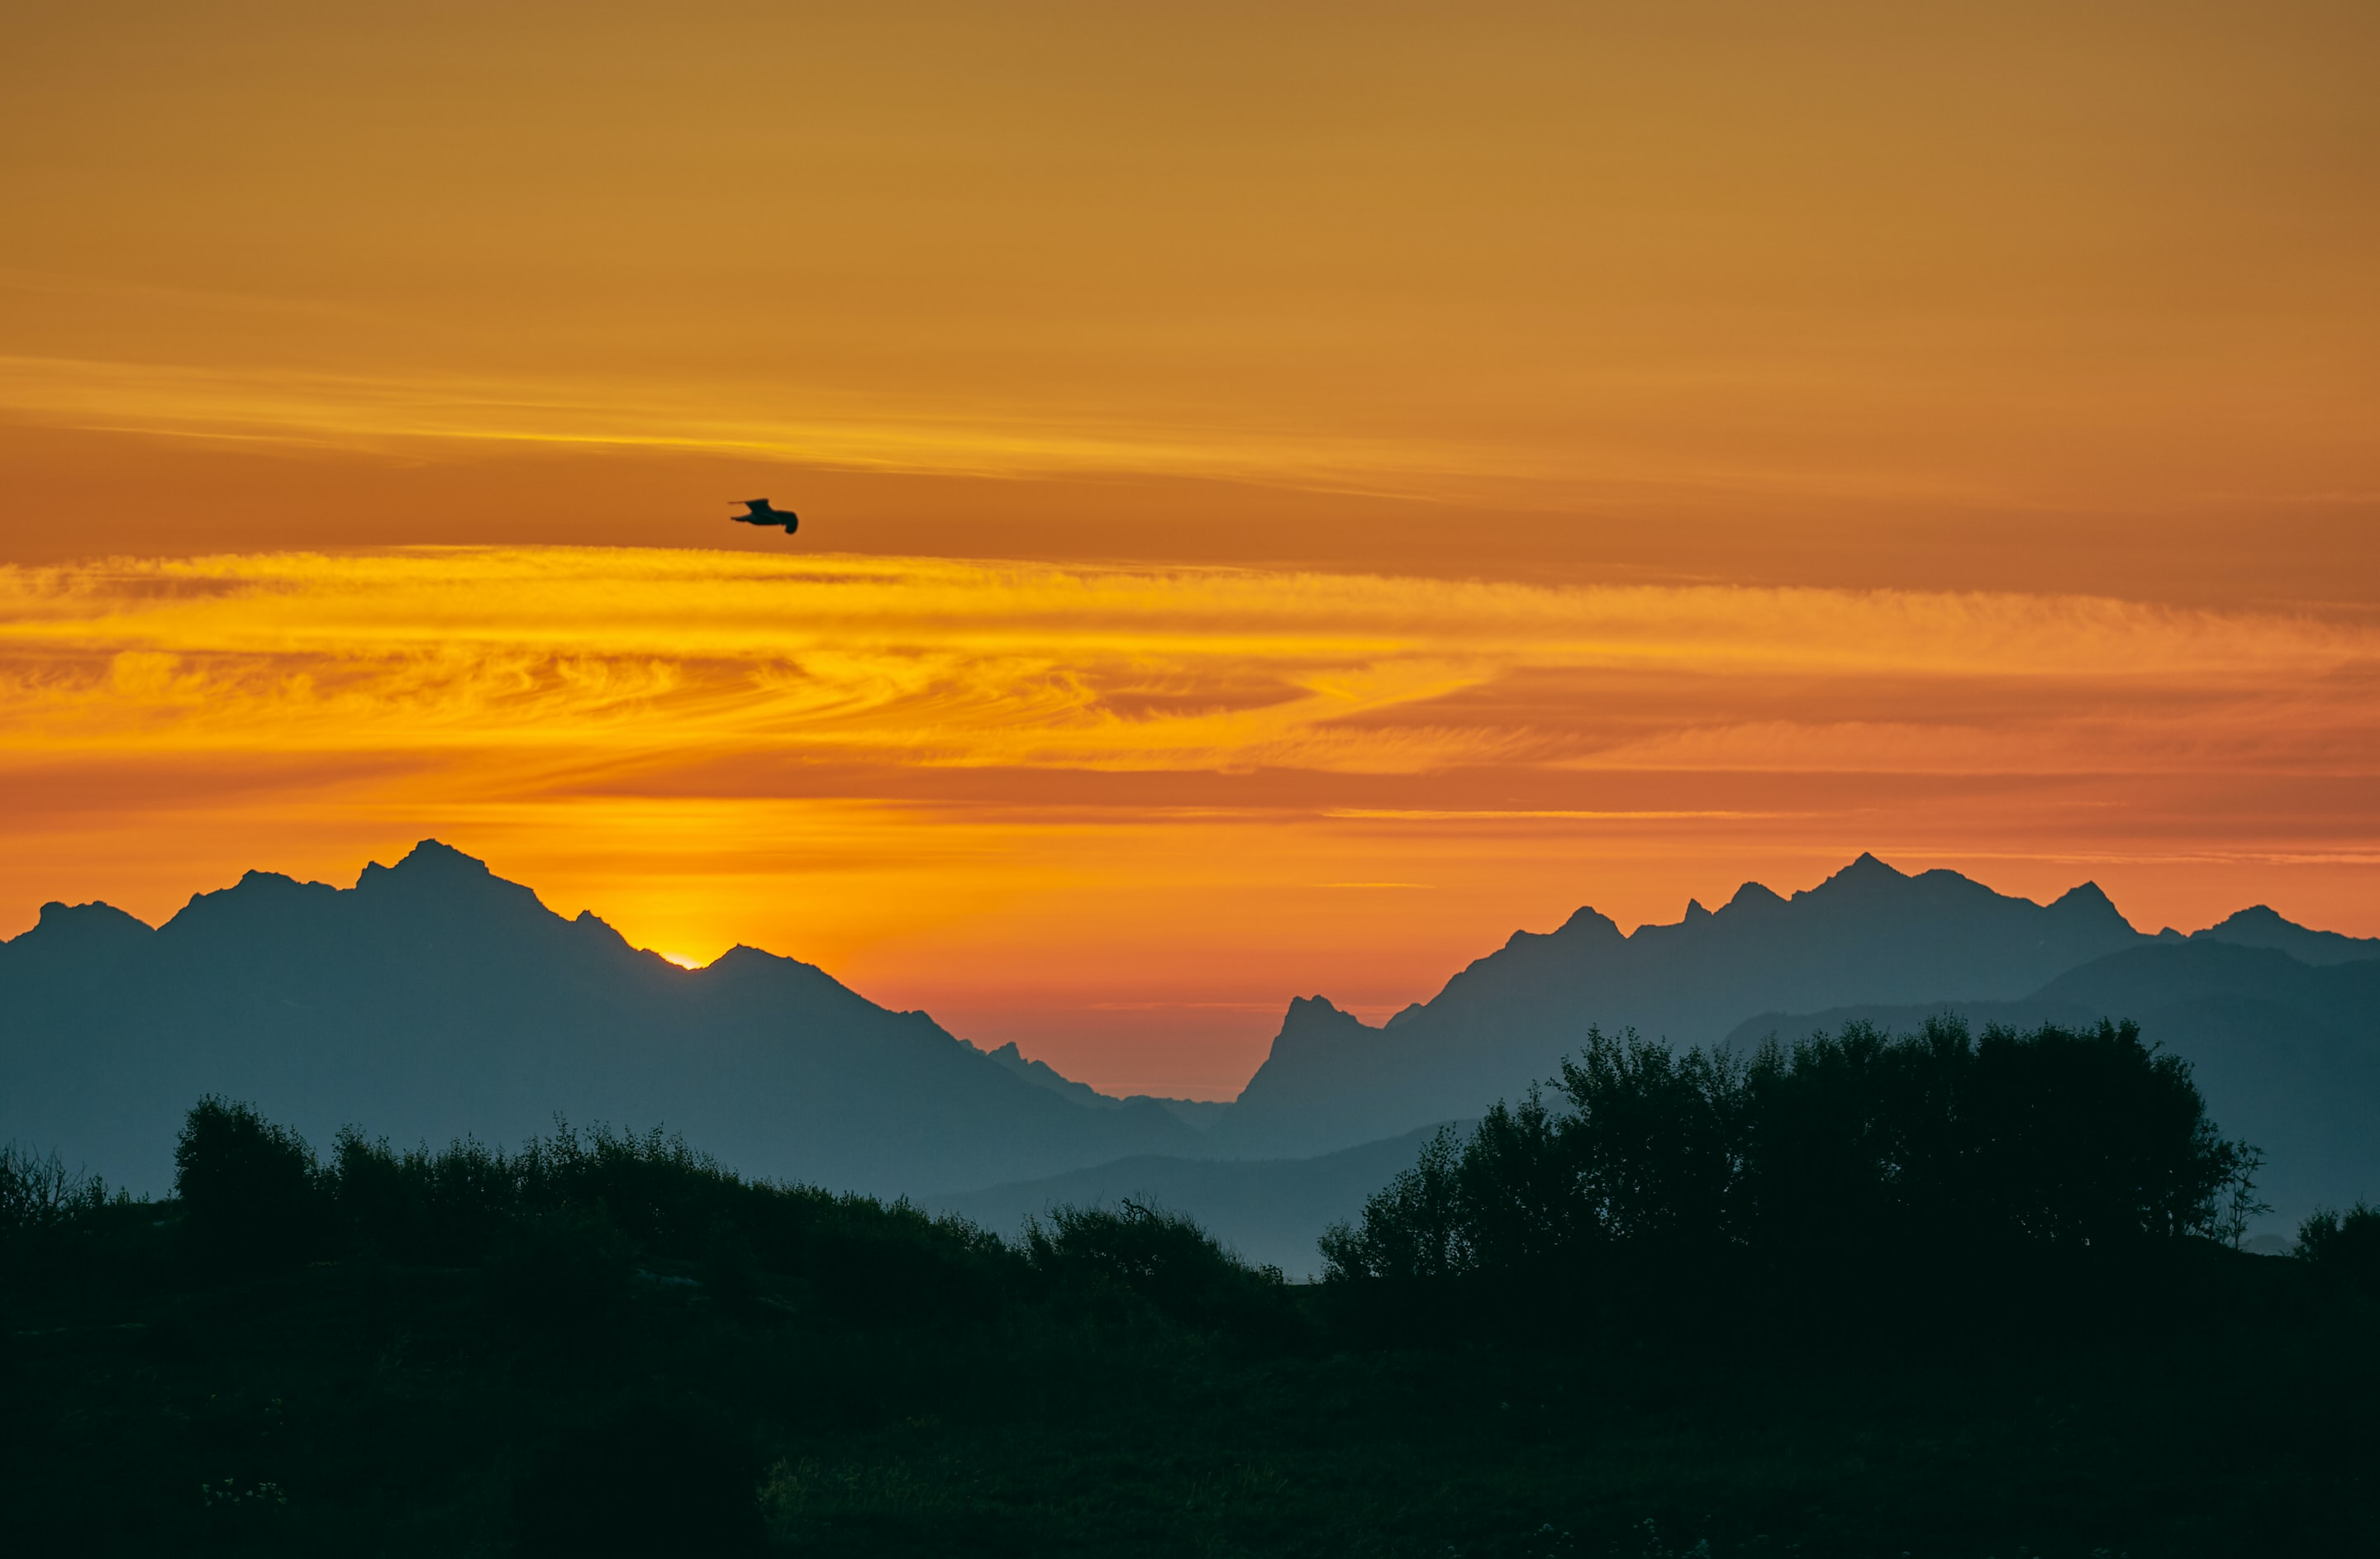 bird over mountain range